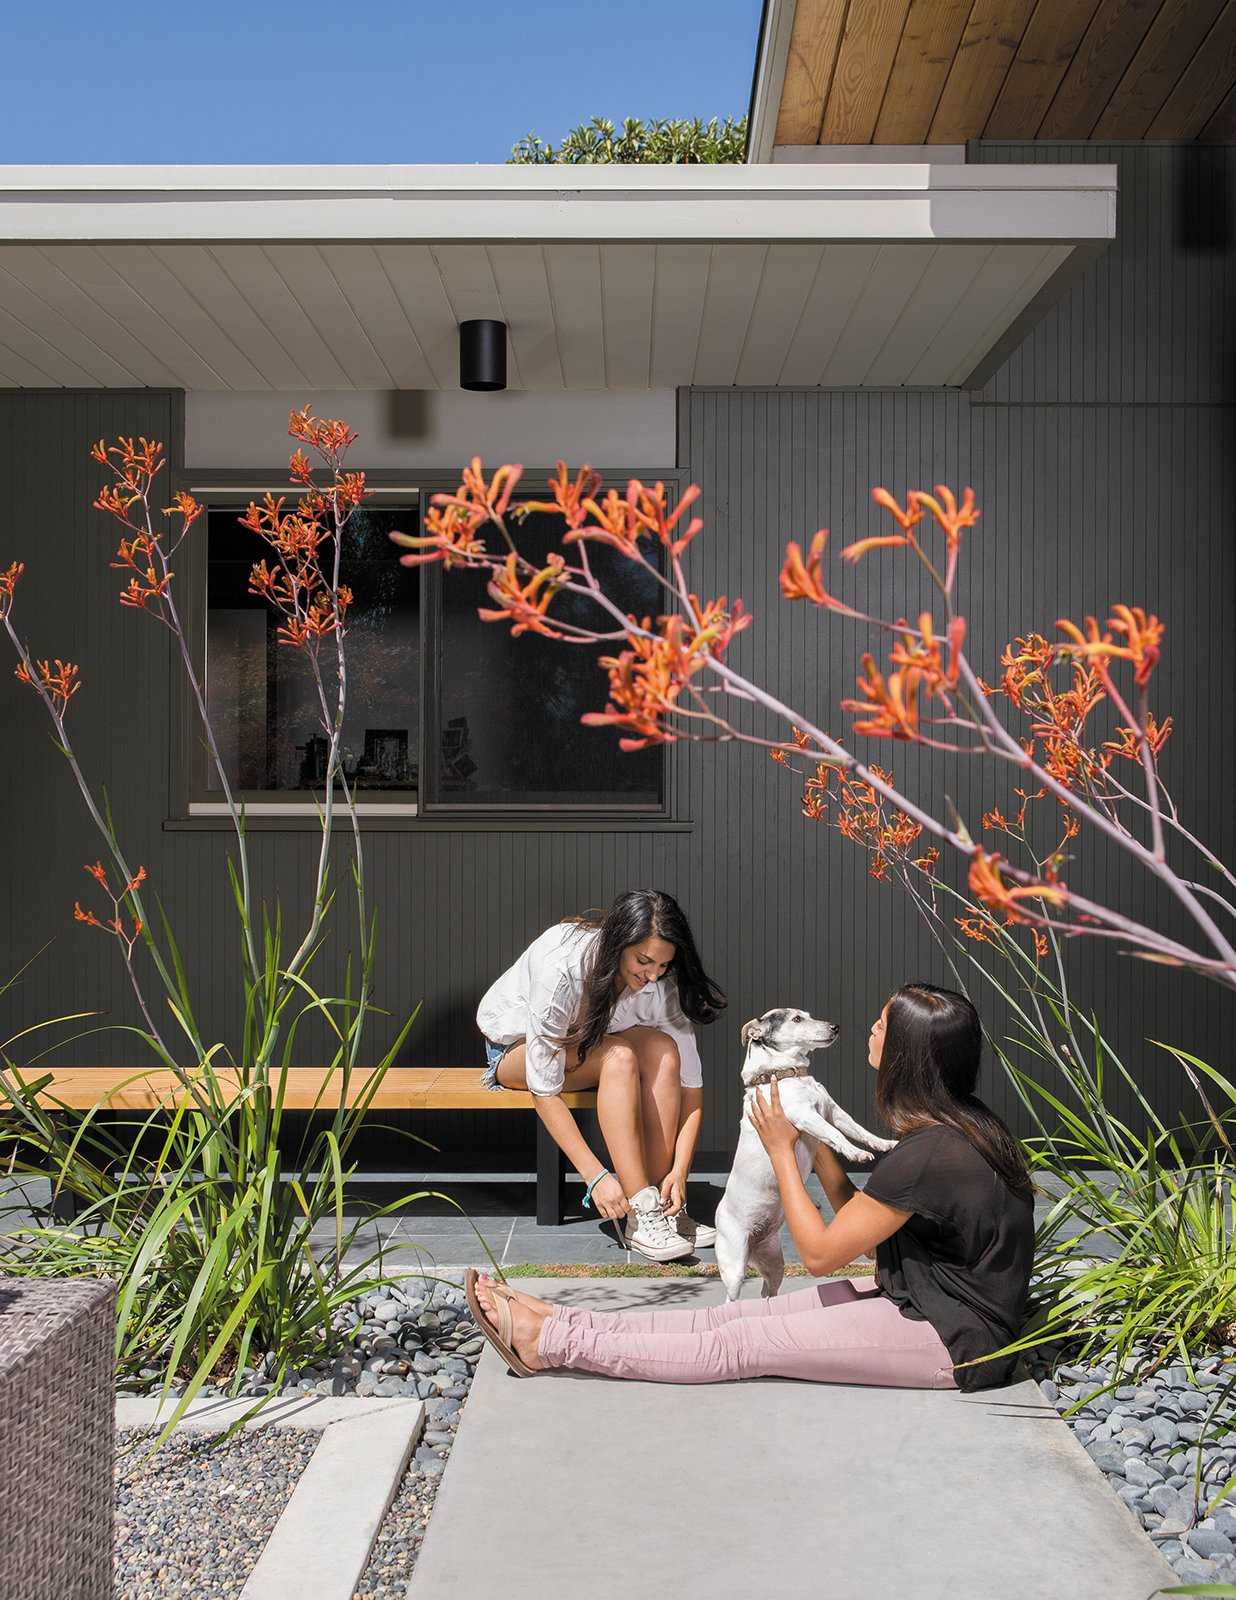 Outdoor, Hardscapes, Walkways, Concrete, and Front Yard Their daughters, Annapurna, left, and Siddartha, play with their dog, Anouck, beneath the kangaroo paws in the entry garden courtyard.  Best Outdoor Concrete Front Yard Photos